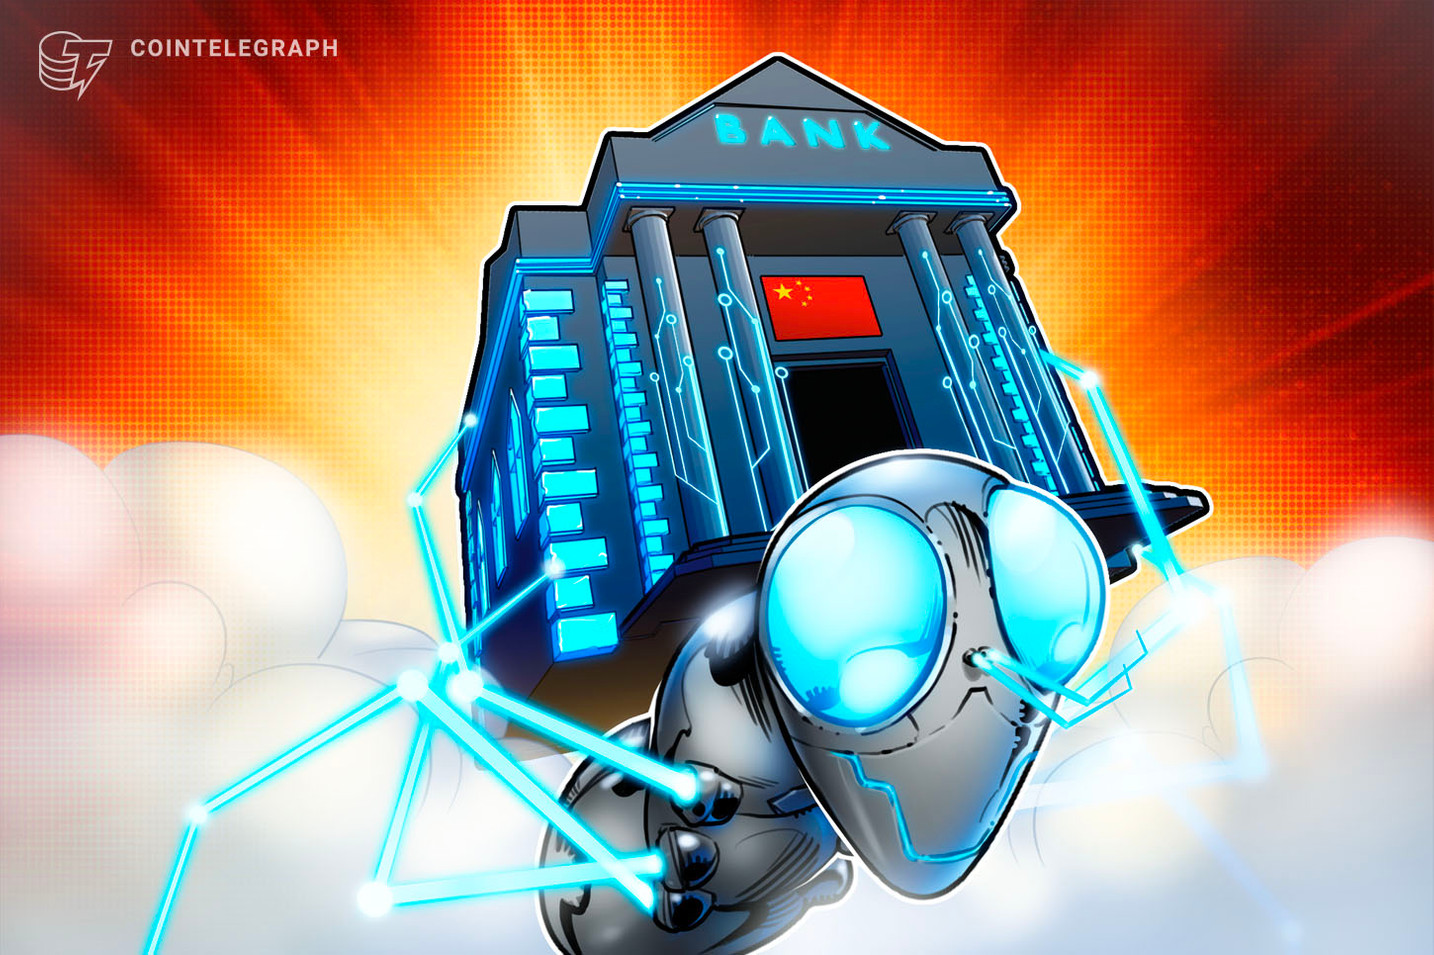 Banco de China utiliza blockchain para emitir bonos financieros por valor de USD 2,800 millones